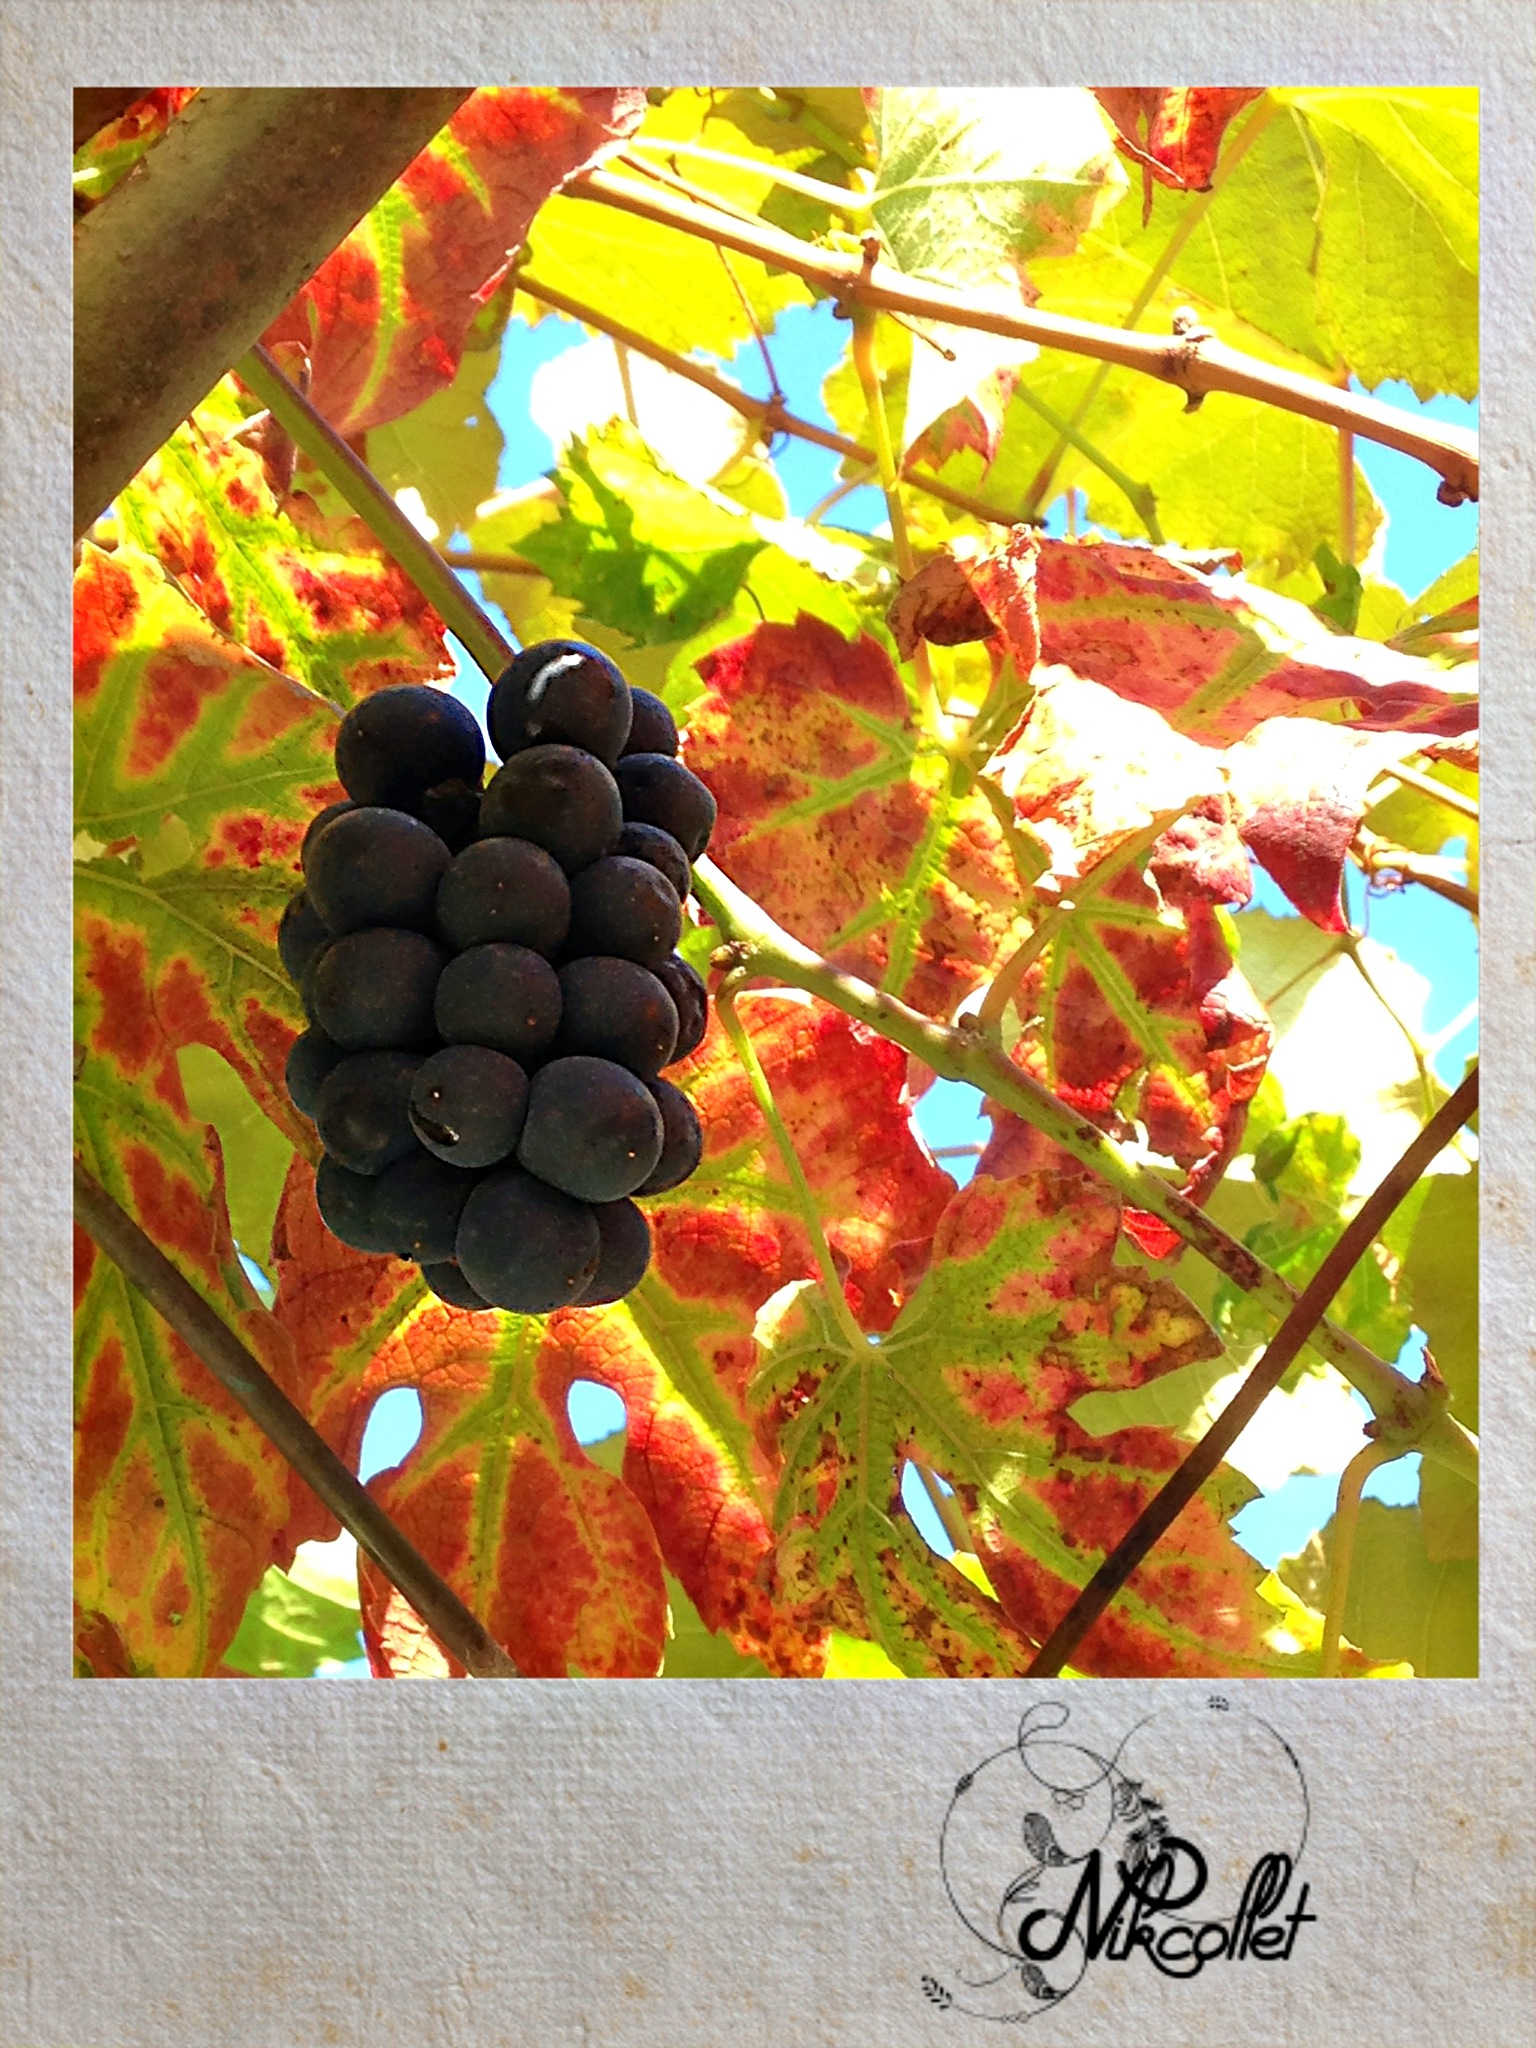 Grapes  by Nikcollet C